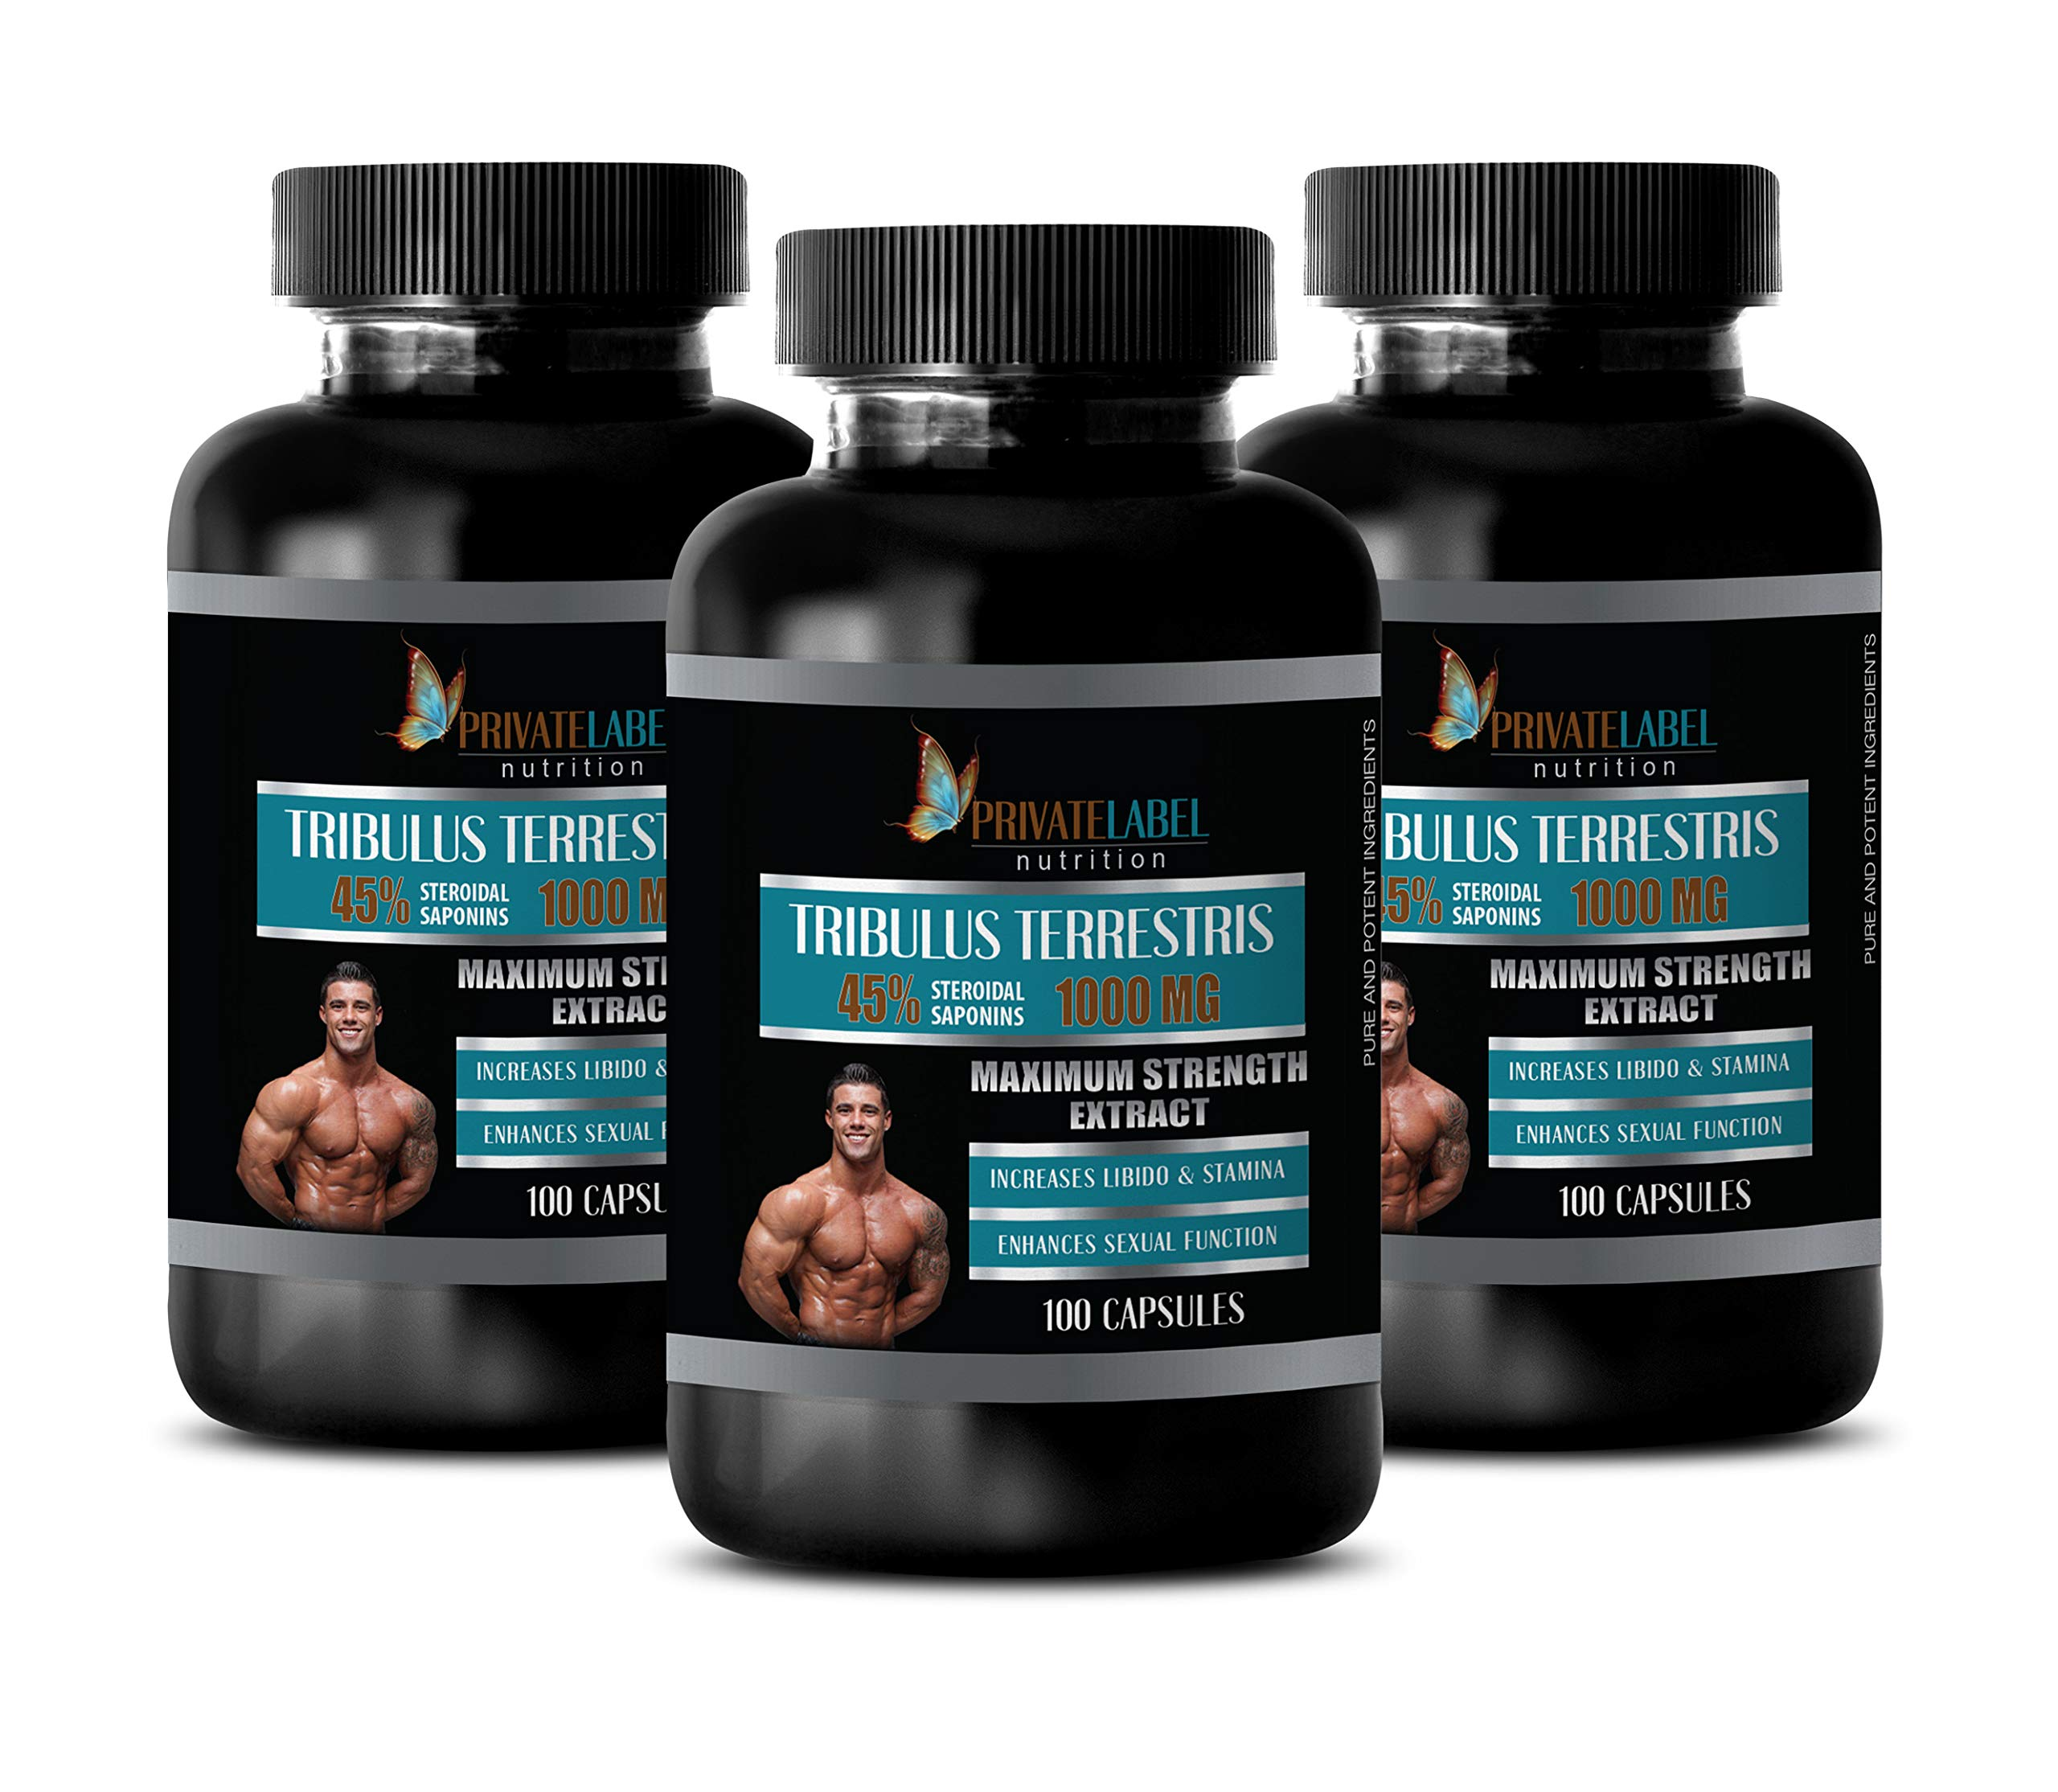 Boost Testosterone Booster for Men - TRIBULUS TERRESTRIS 45% STEROIDAL SAPONINS 1000MG - Maximum Strength Extract - tribulus terrestris 100mg for Men - 3 Bottles 300 Capsules